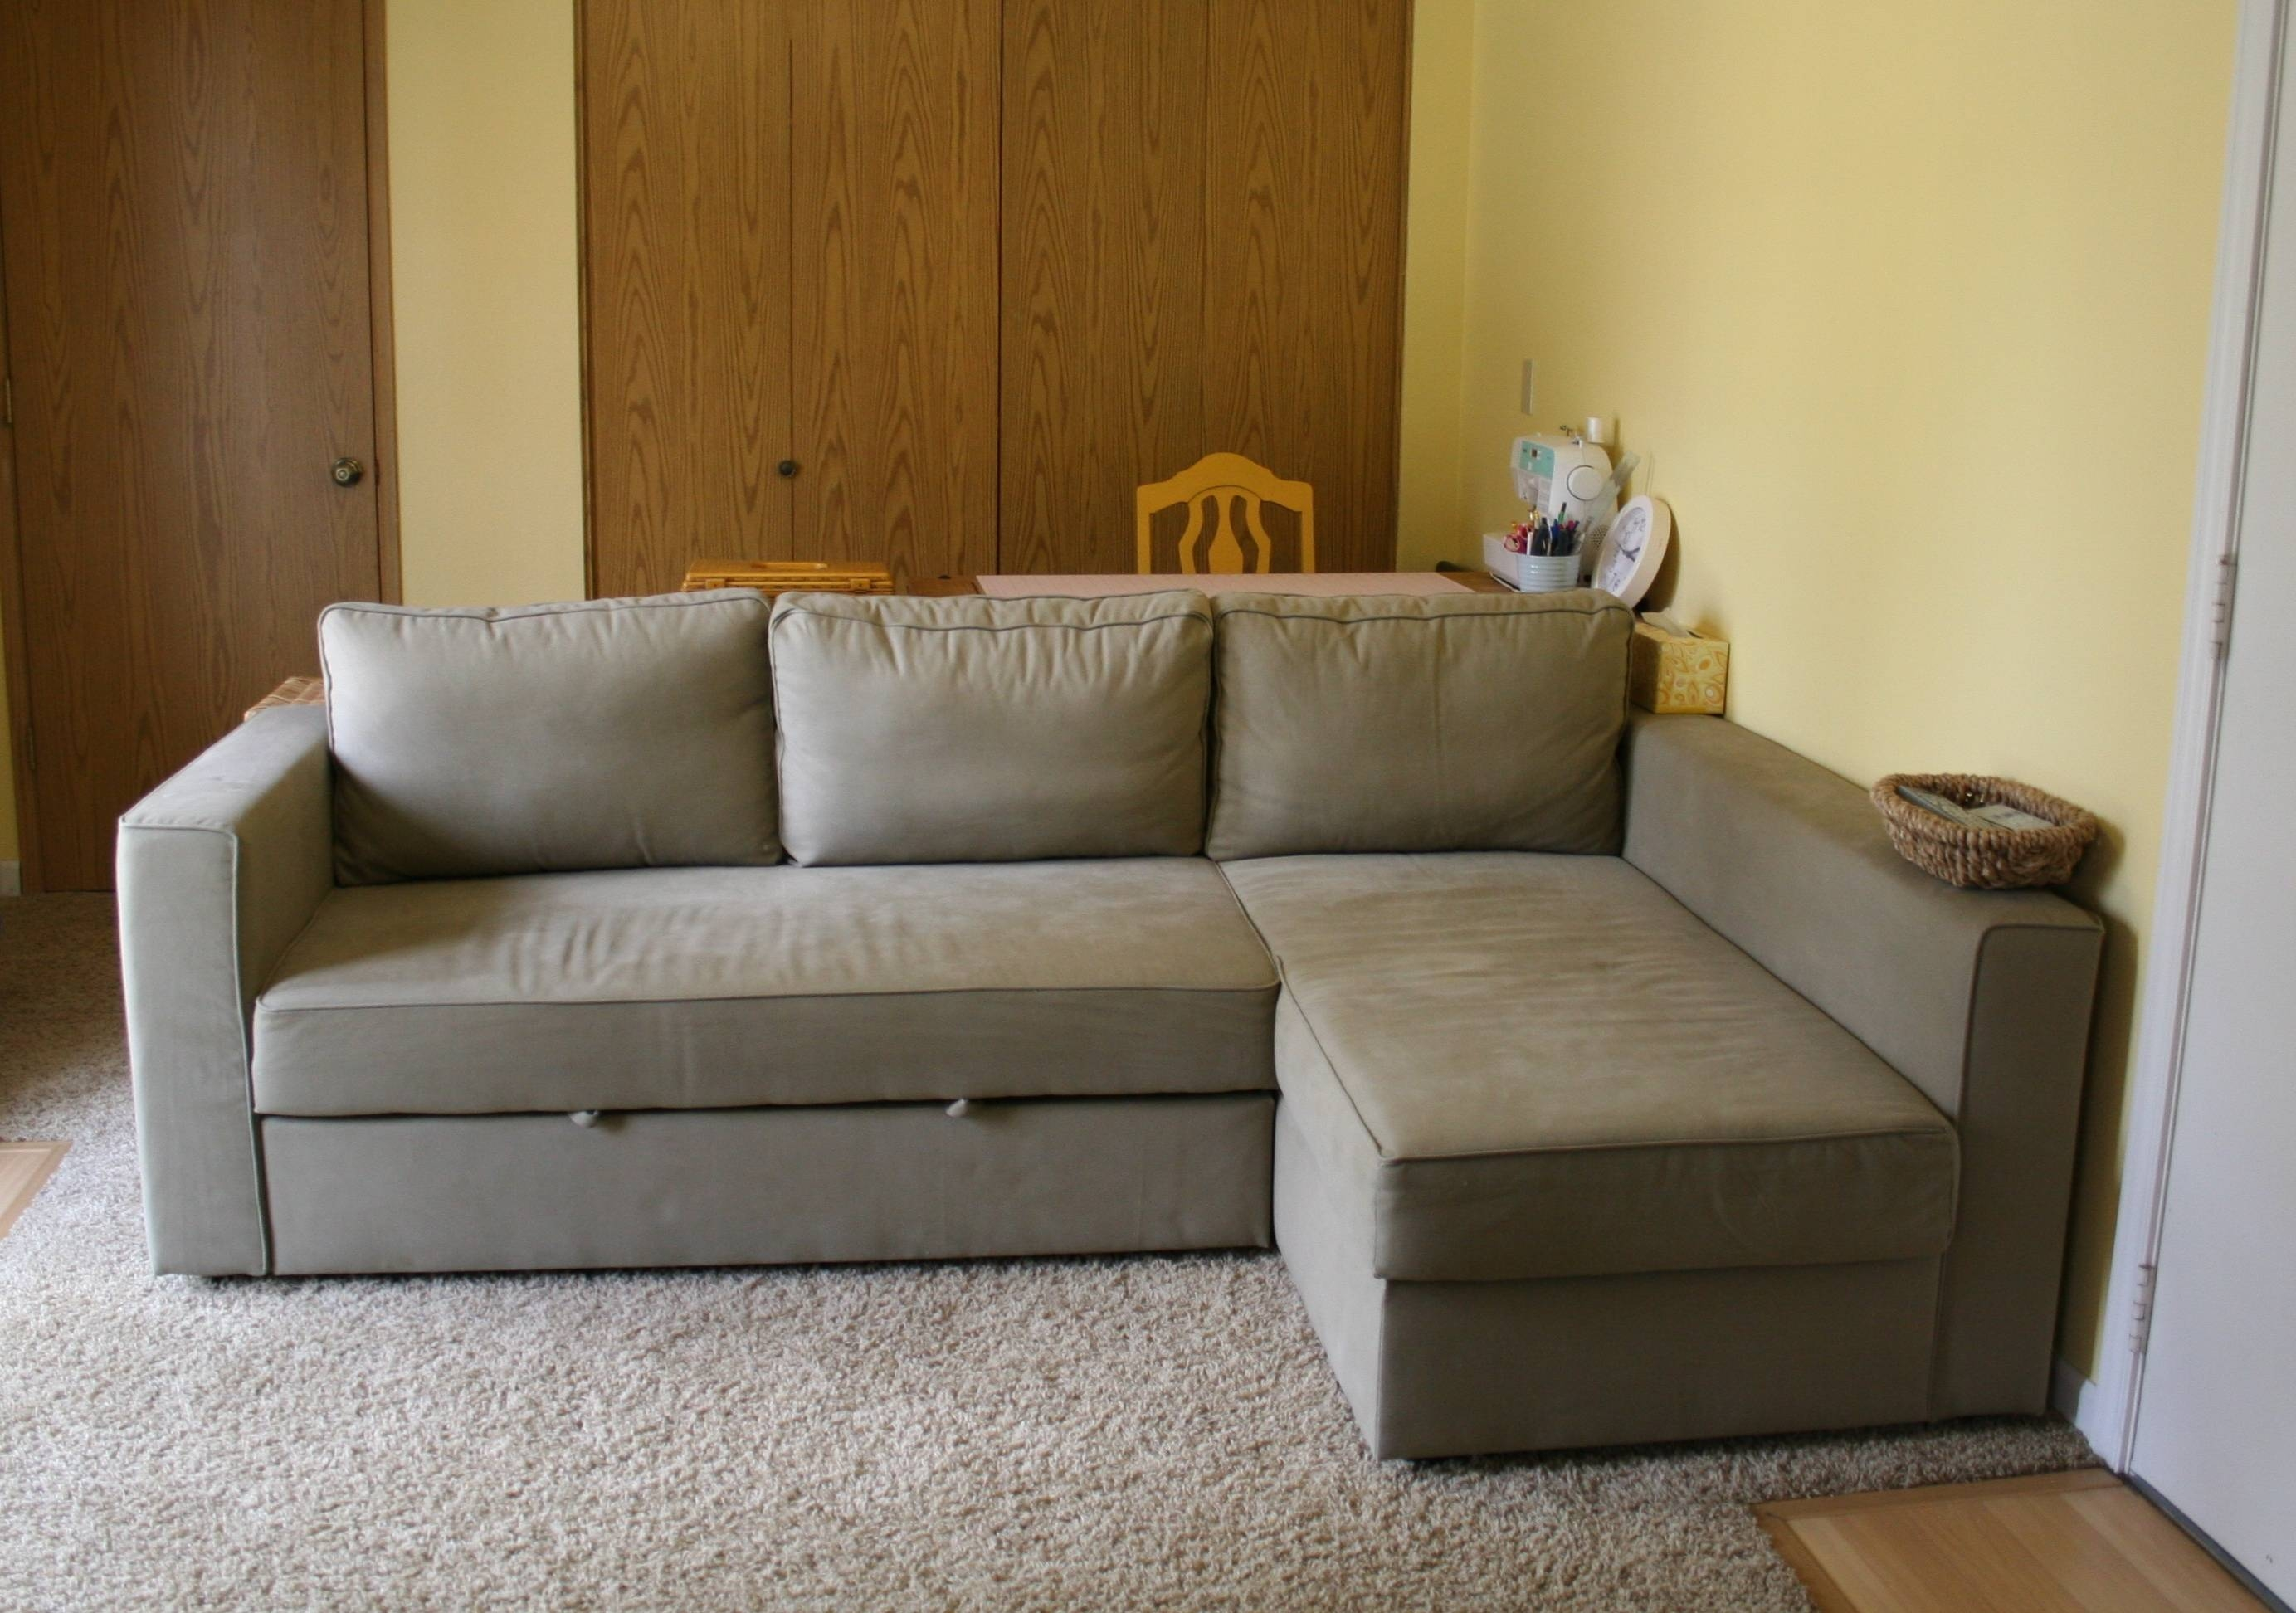 Manstad Ikea Sofa - Leather Sectional Sofa throughout Manstad Sofa Bed Ikea (Image 13 of 25)